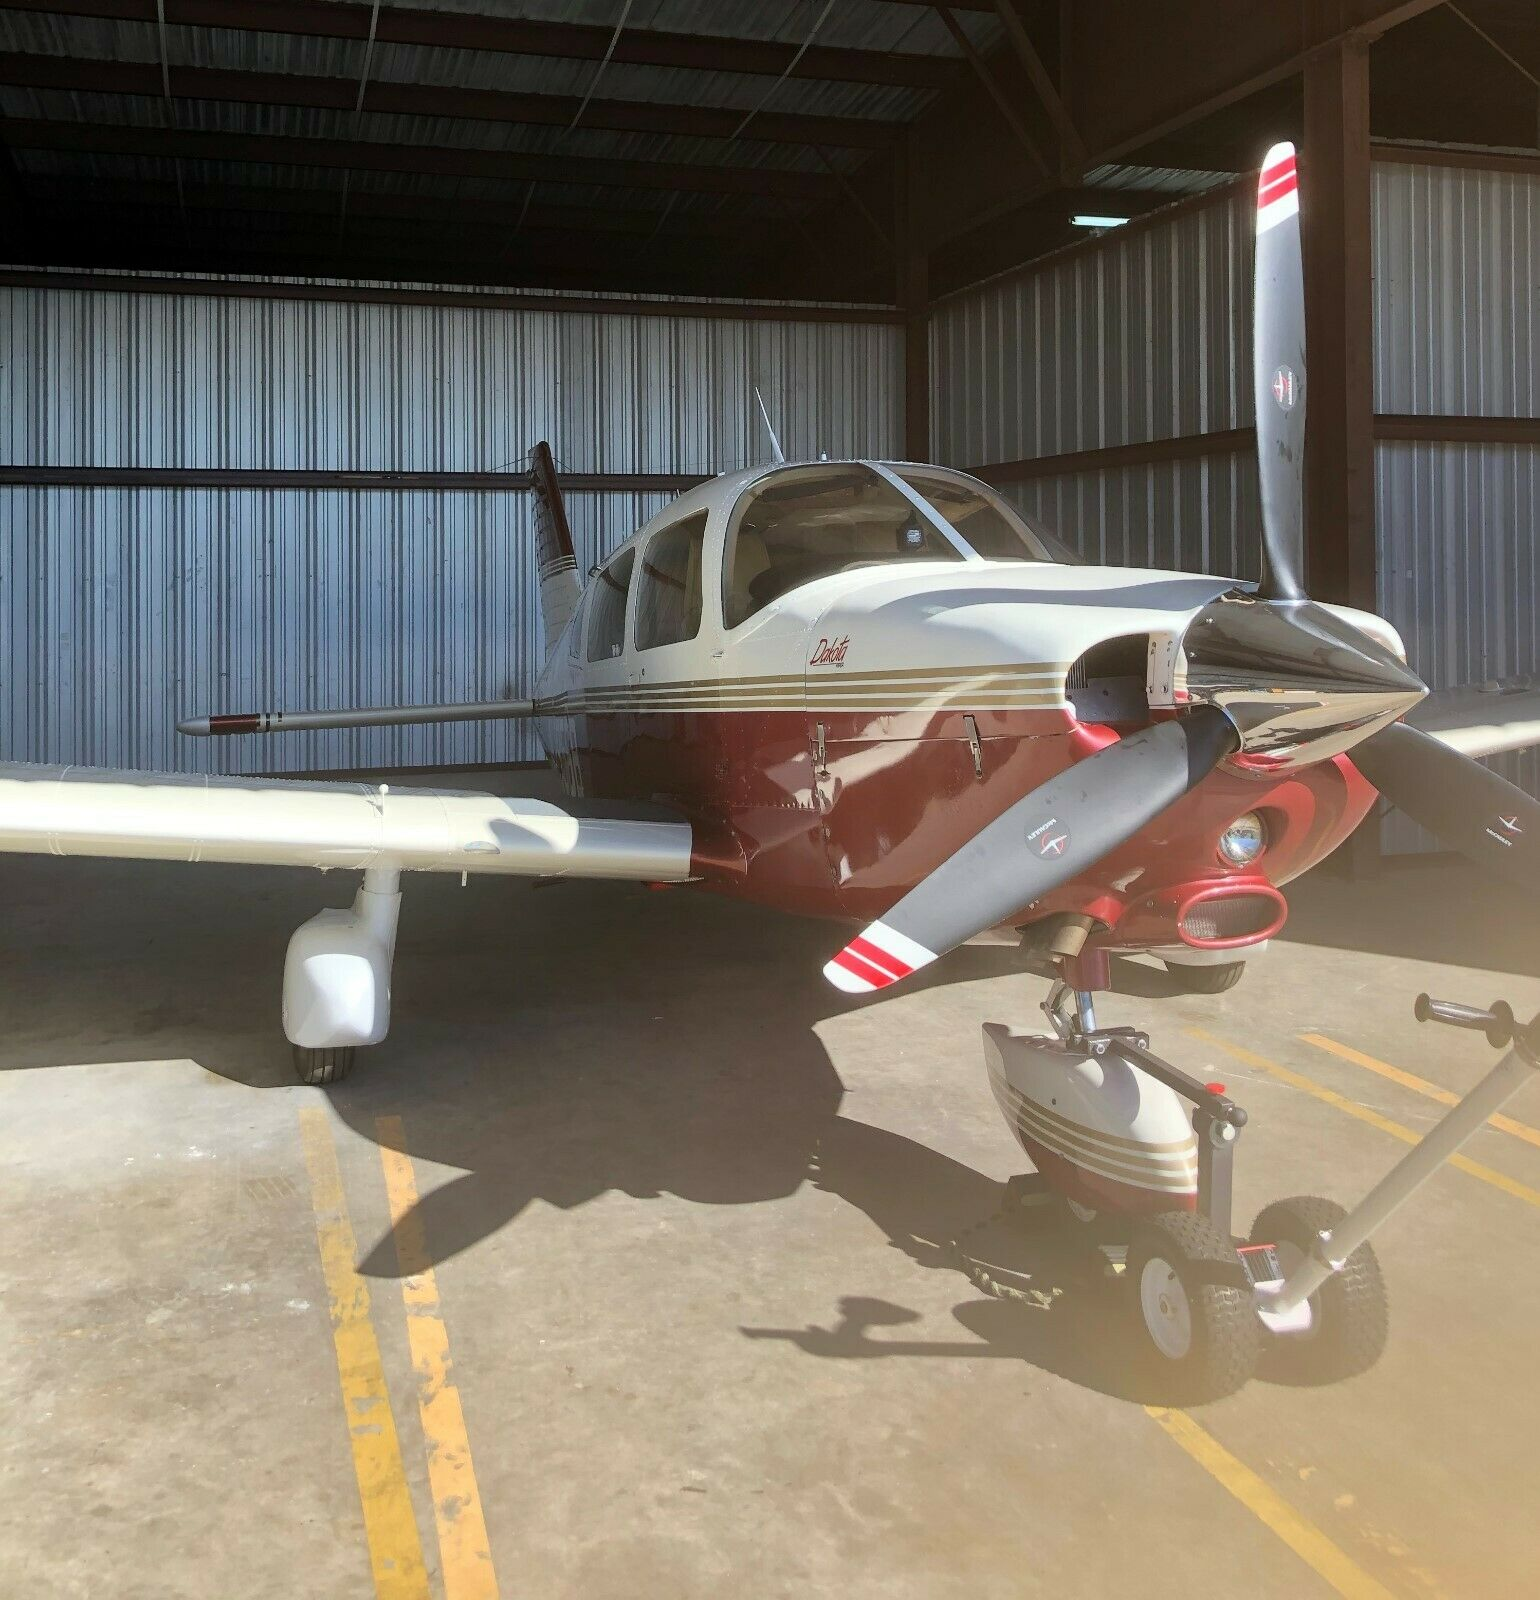 hangared 1979 Piper Dakota 28/236 aircraft for sale